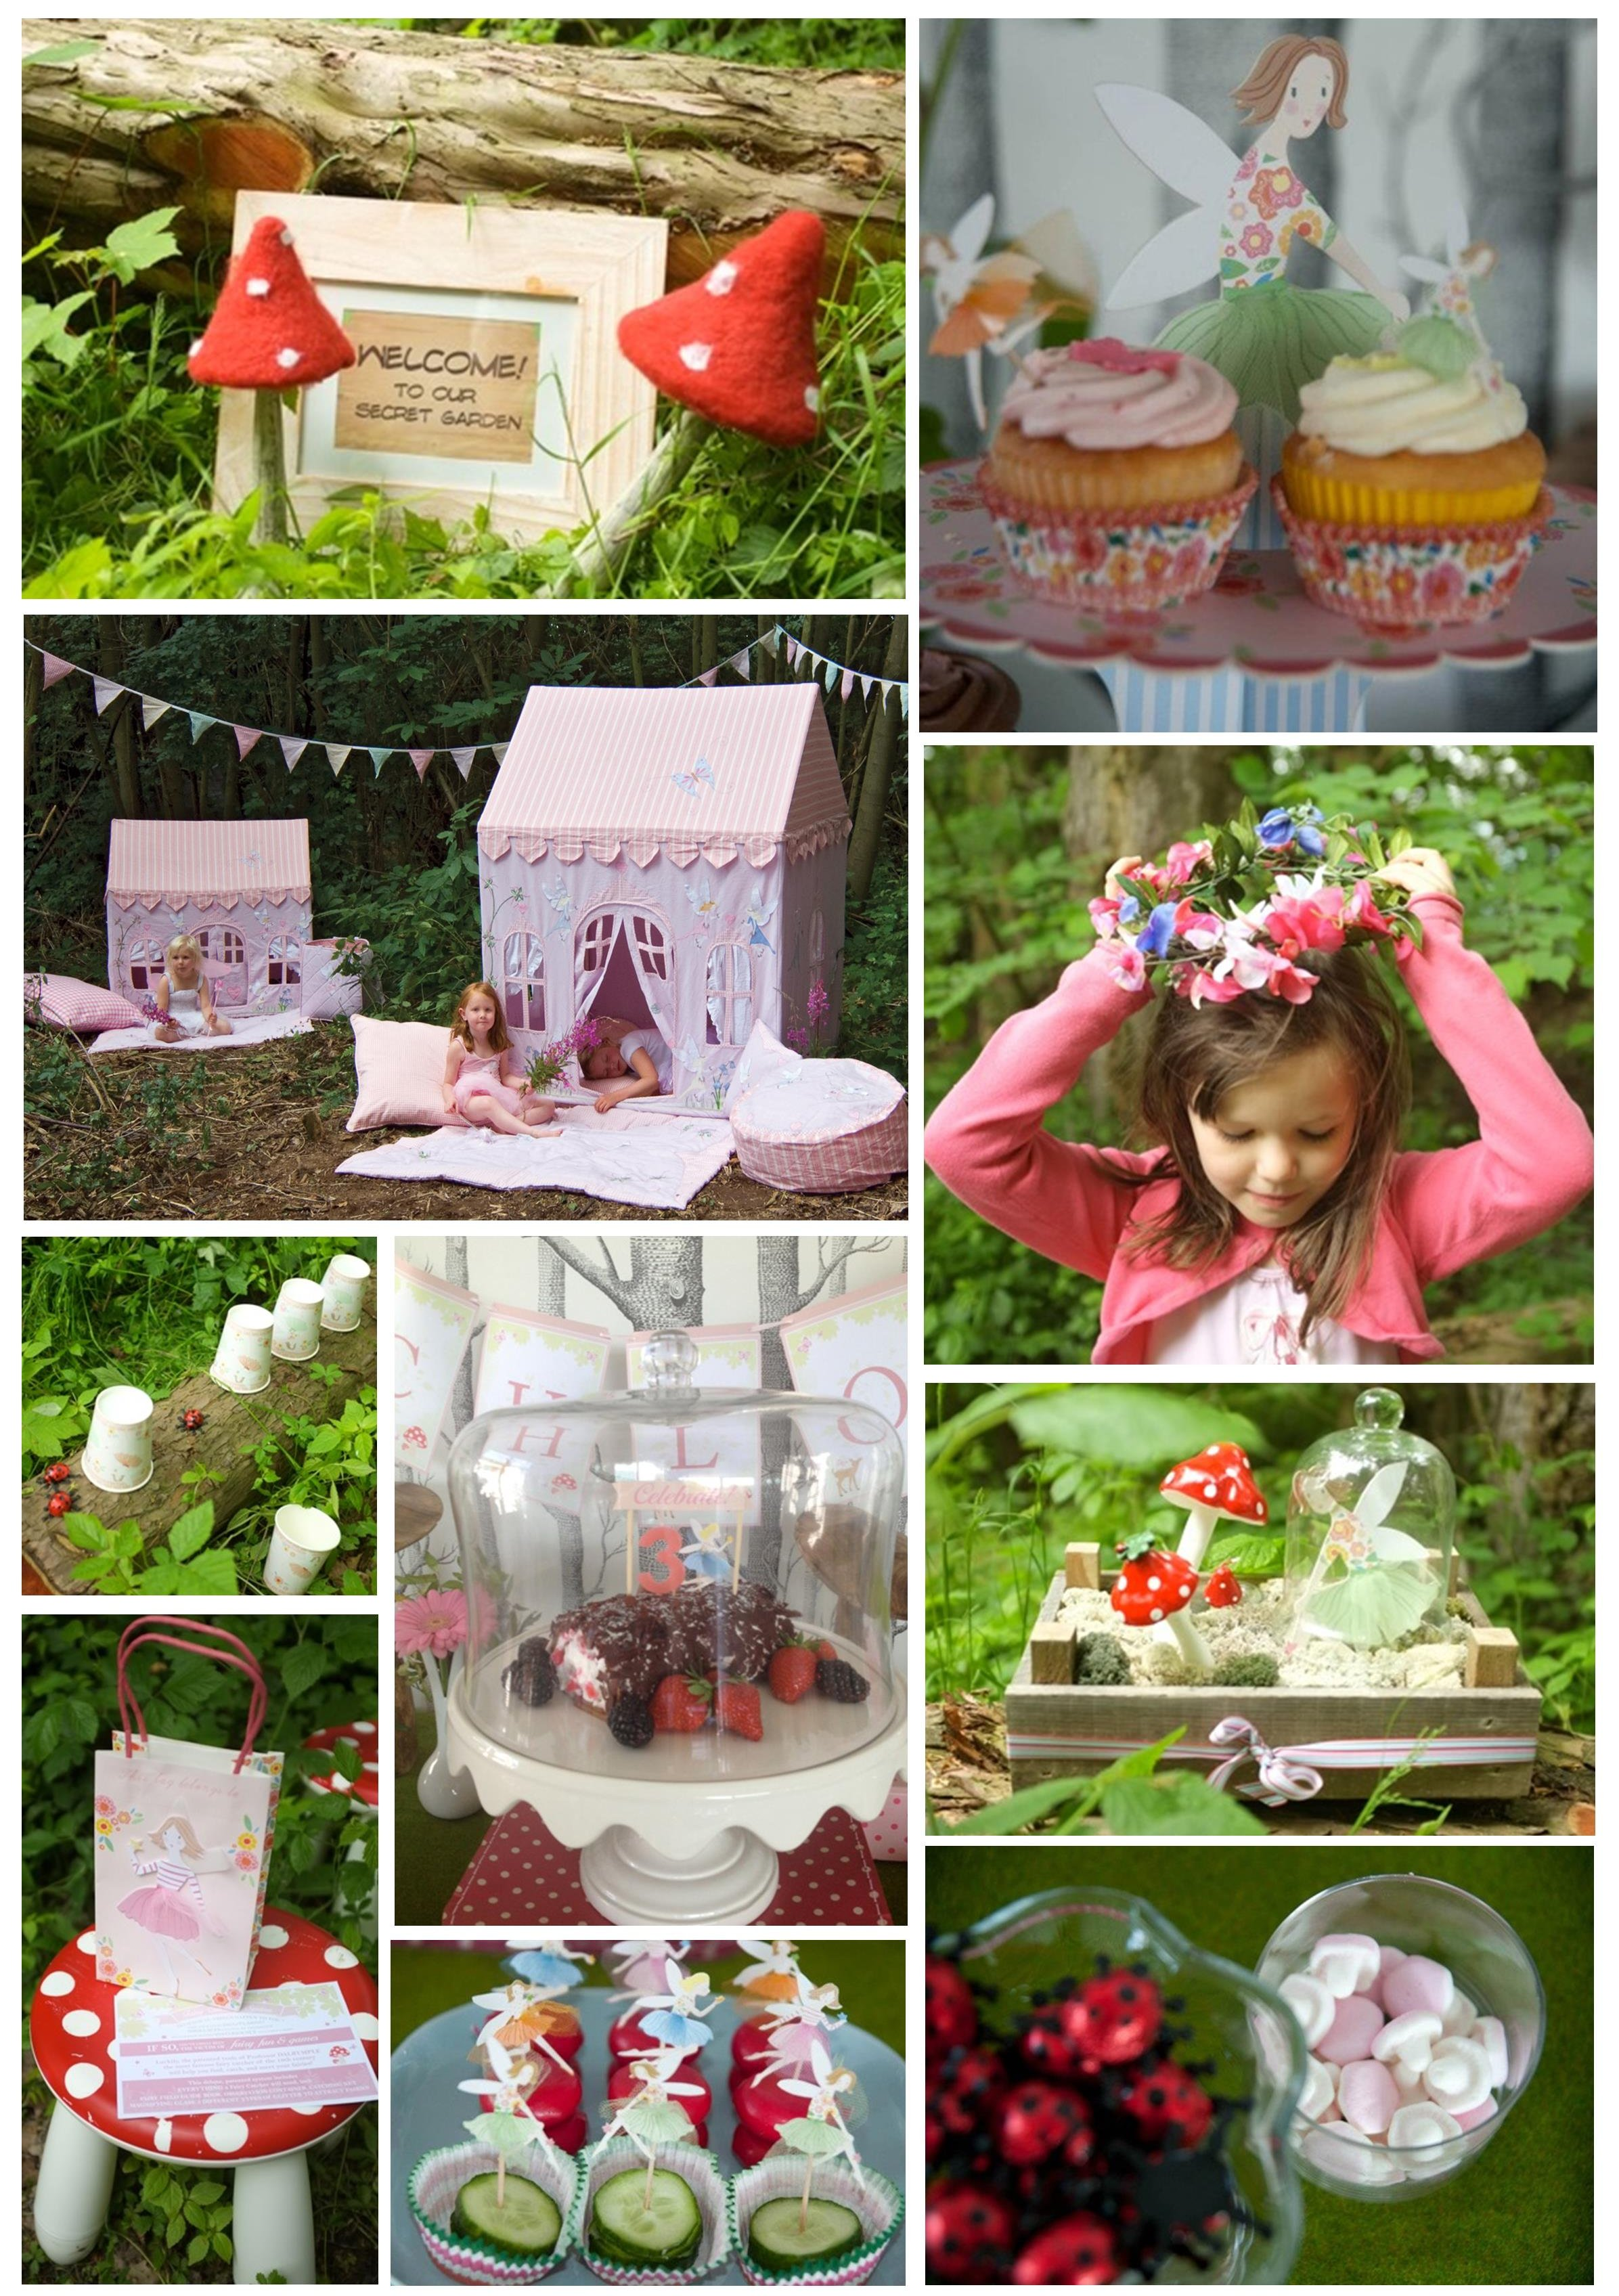 50 Best Kids Party Ideas Images On Pinterest